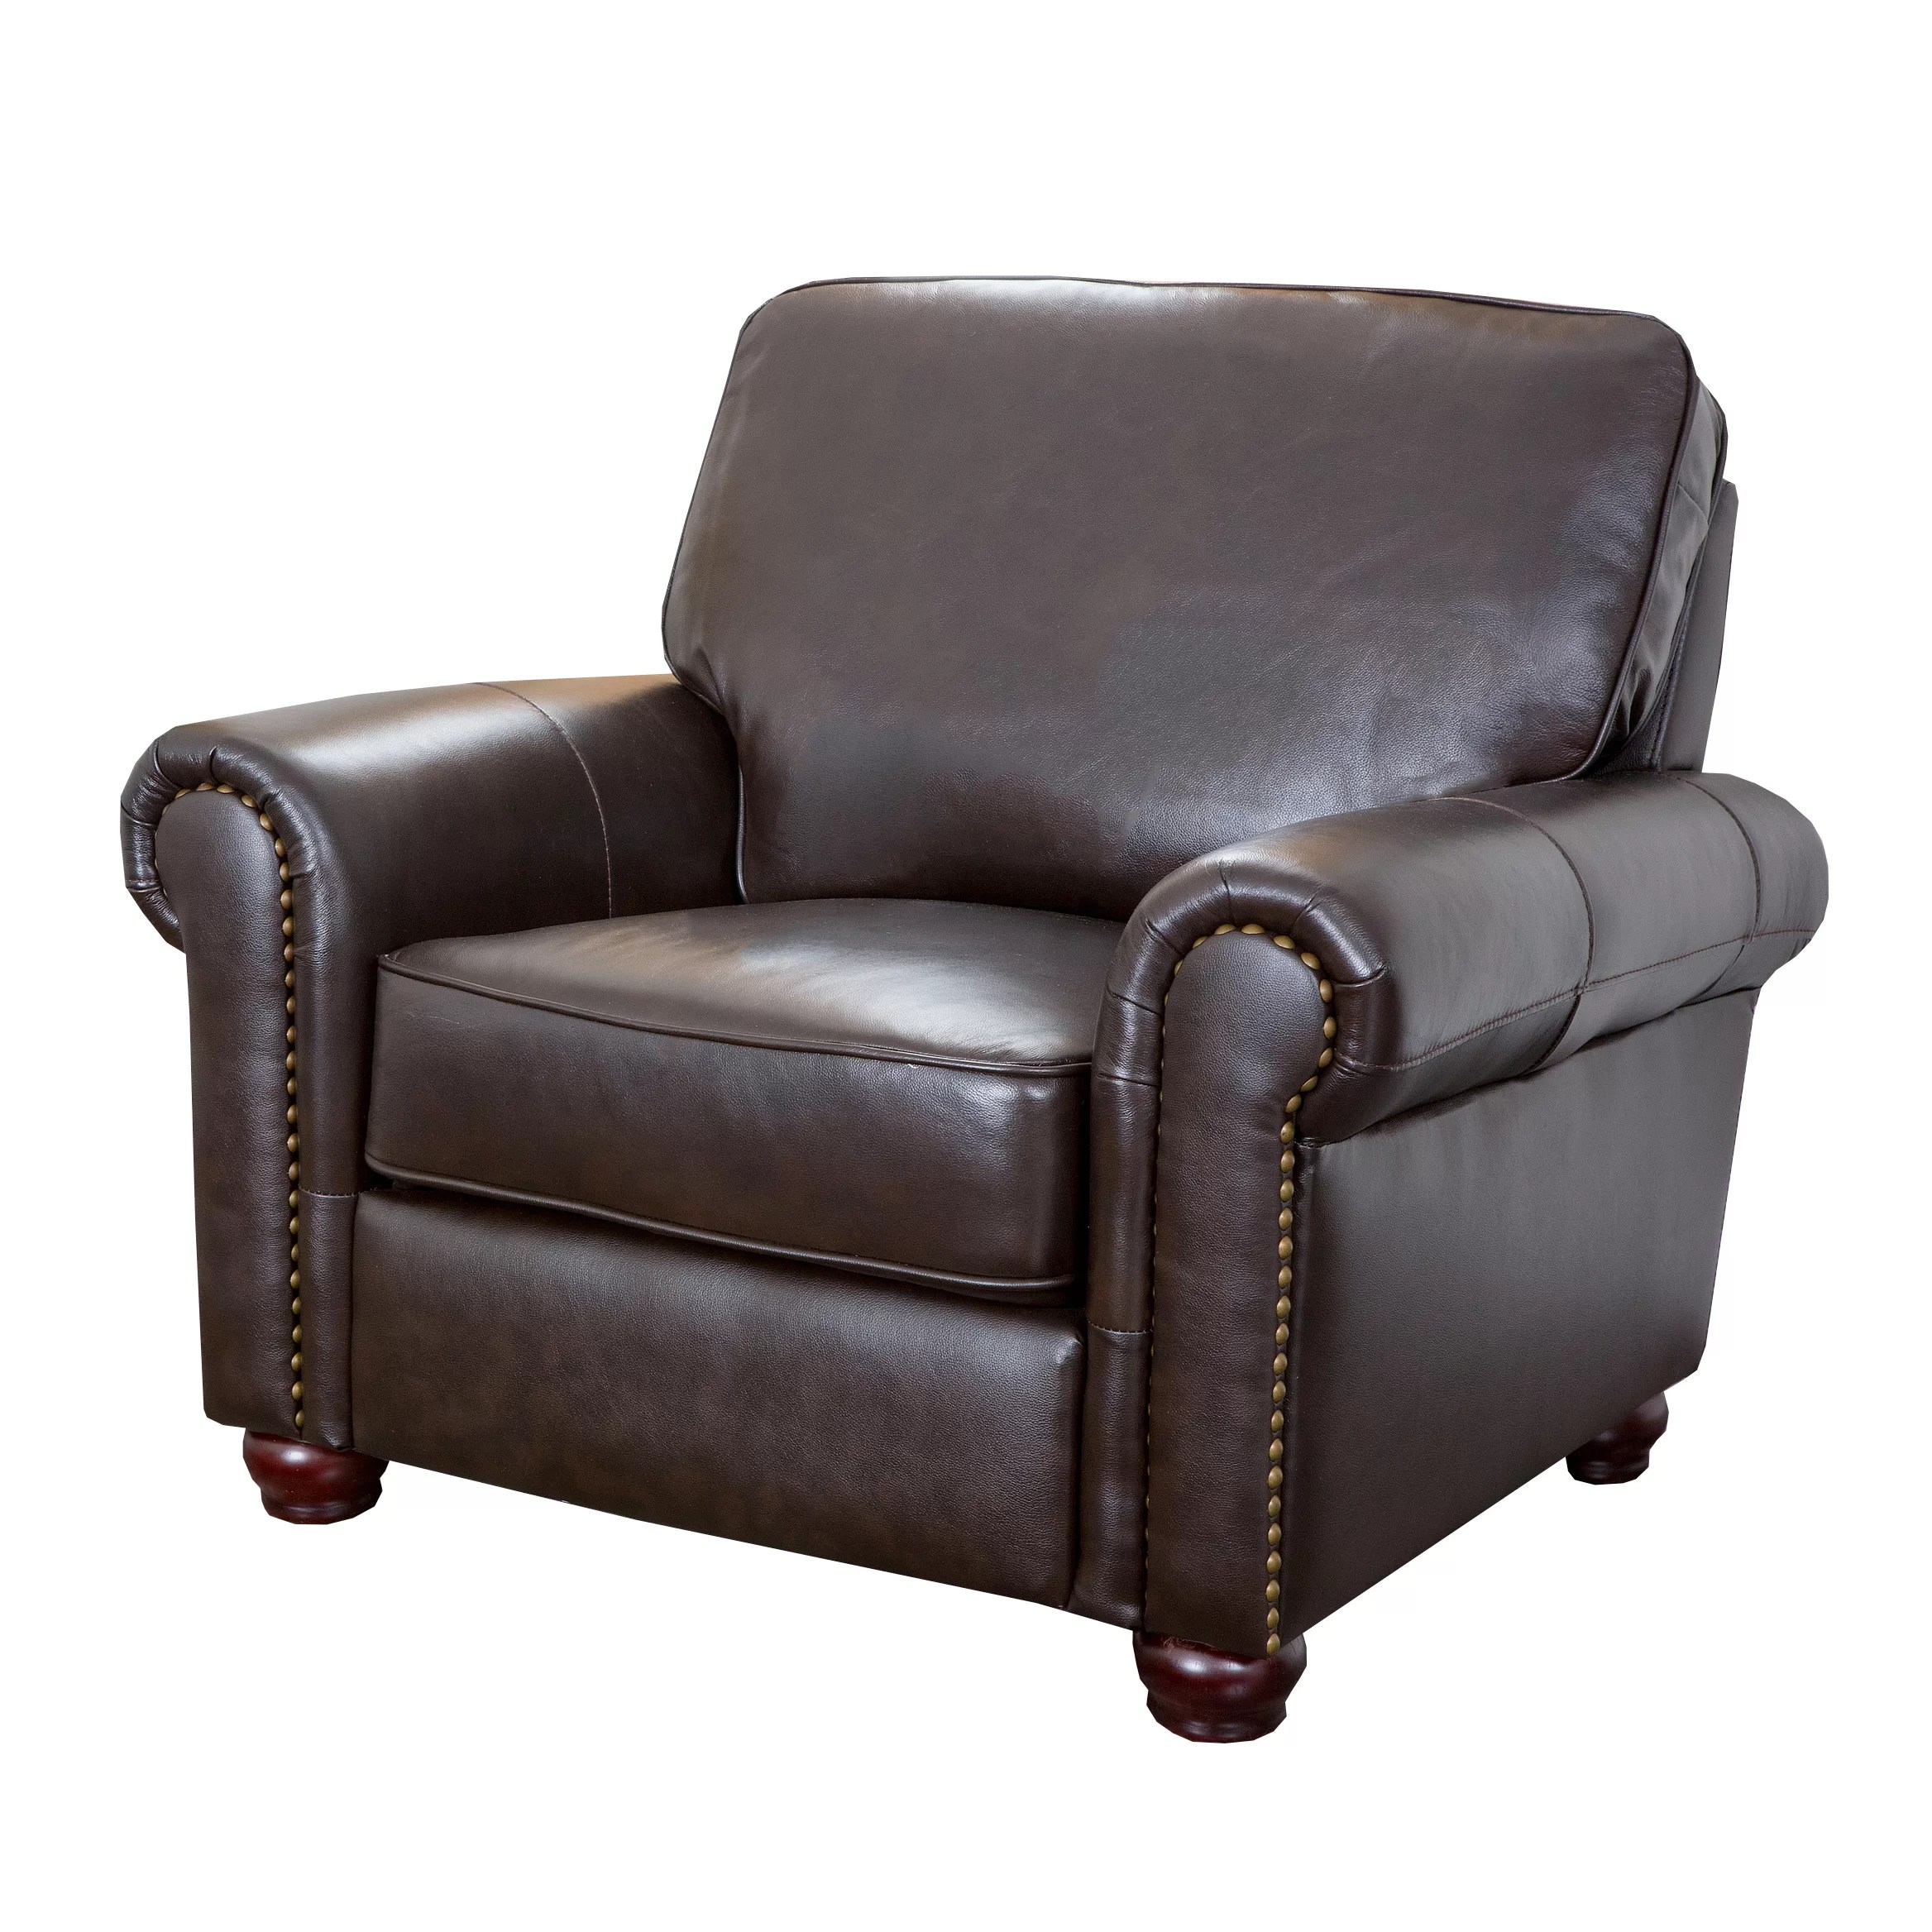 Club Chair Leather Darby Home Co Coggins Leather Club Chair And Reviews Wayfair